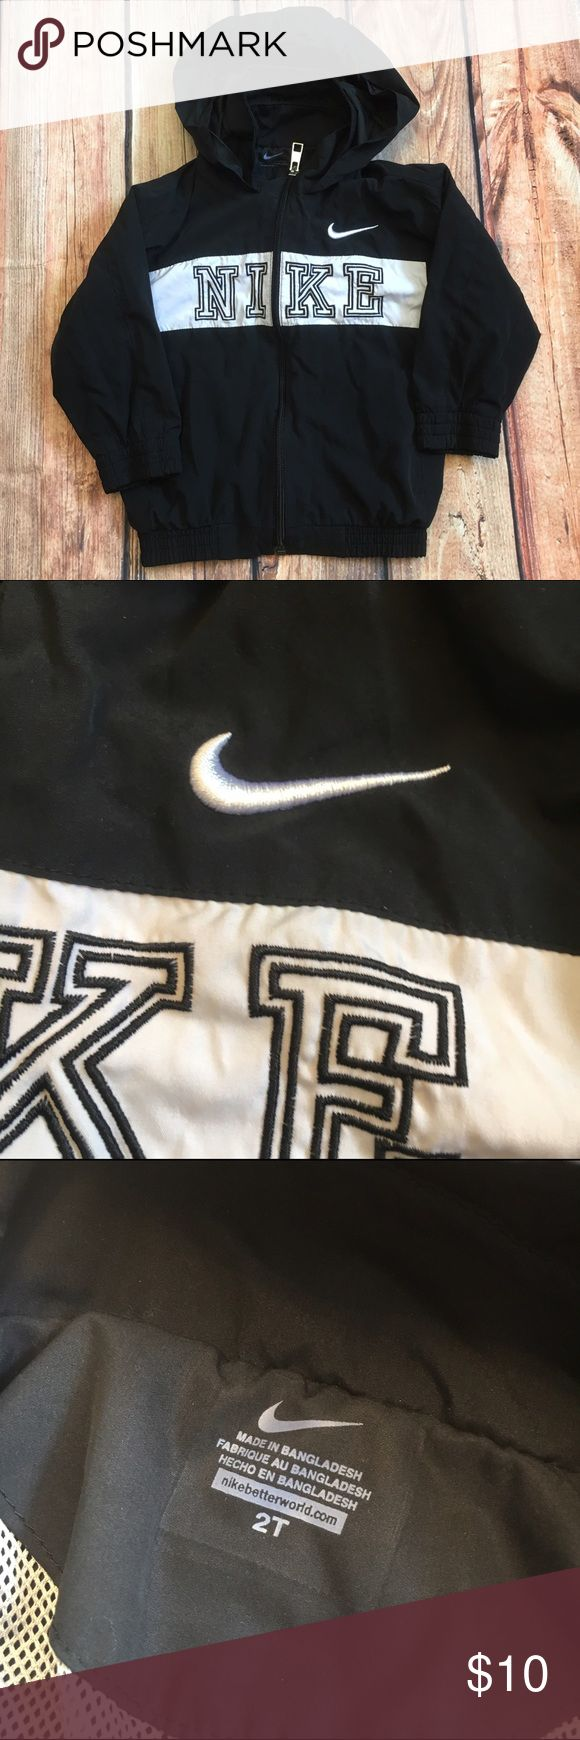 Baby size 2t Nike zip up hoodie black white Size 2t Nike zip up with hood. Hood rolls up and velcros to hide away. Velcro has a few fuzzies. Jacket polyester. In good condition. Nike Jackets & Coats